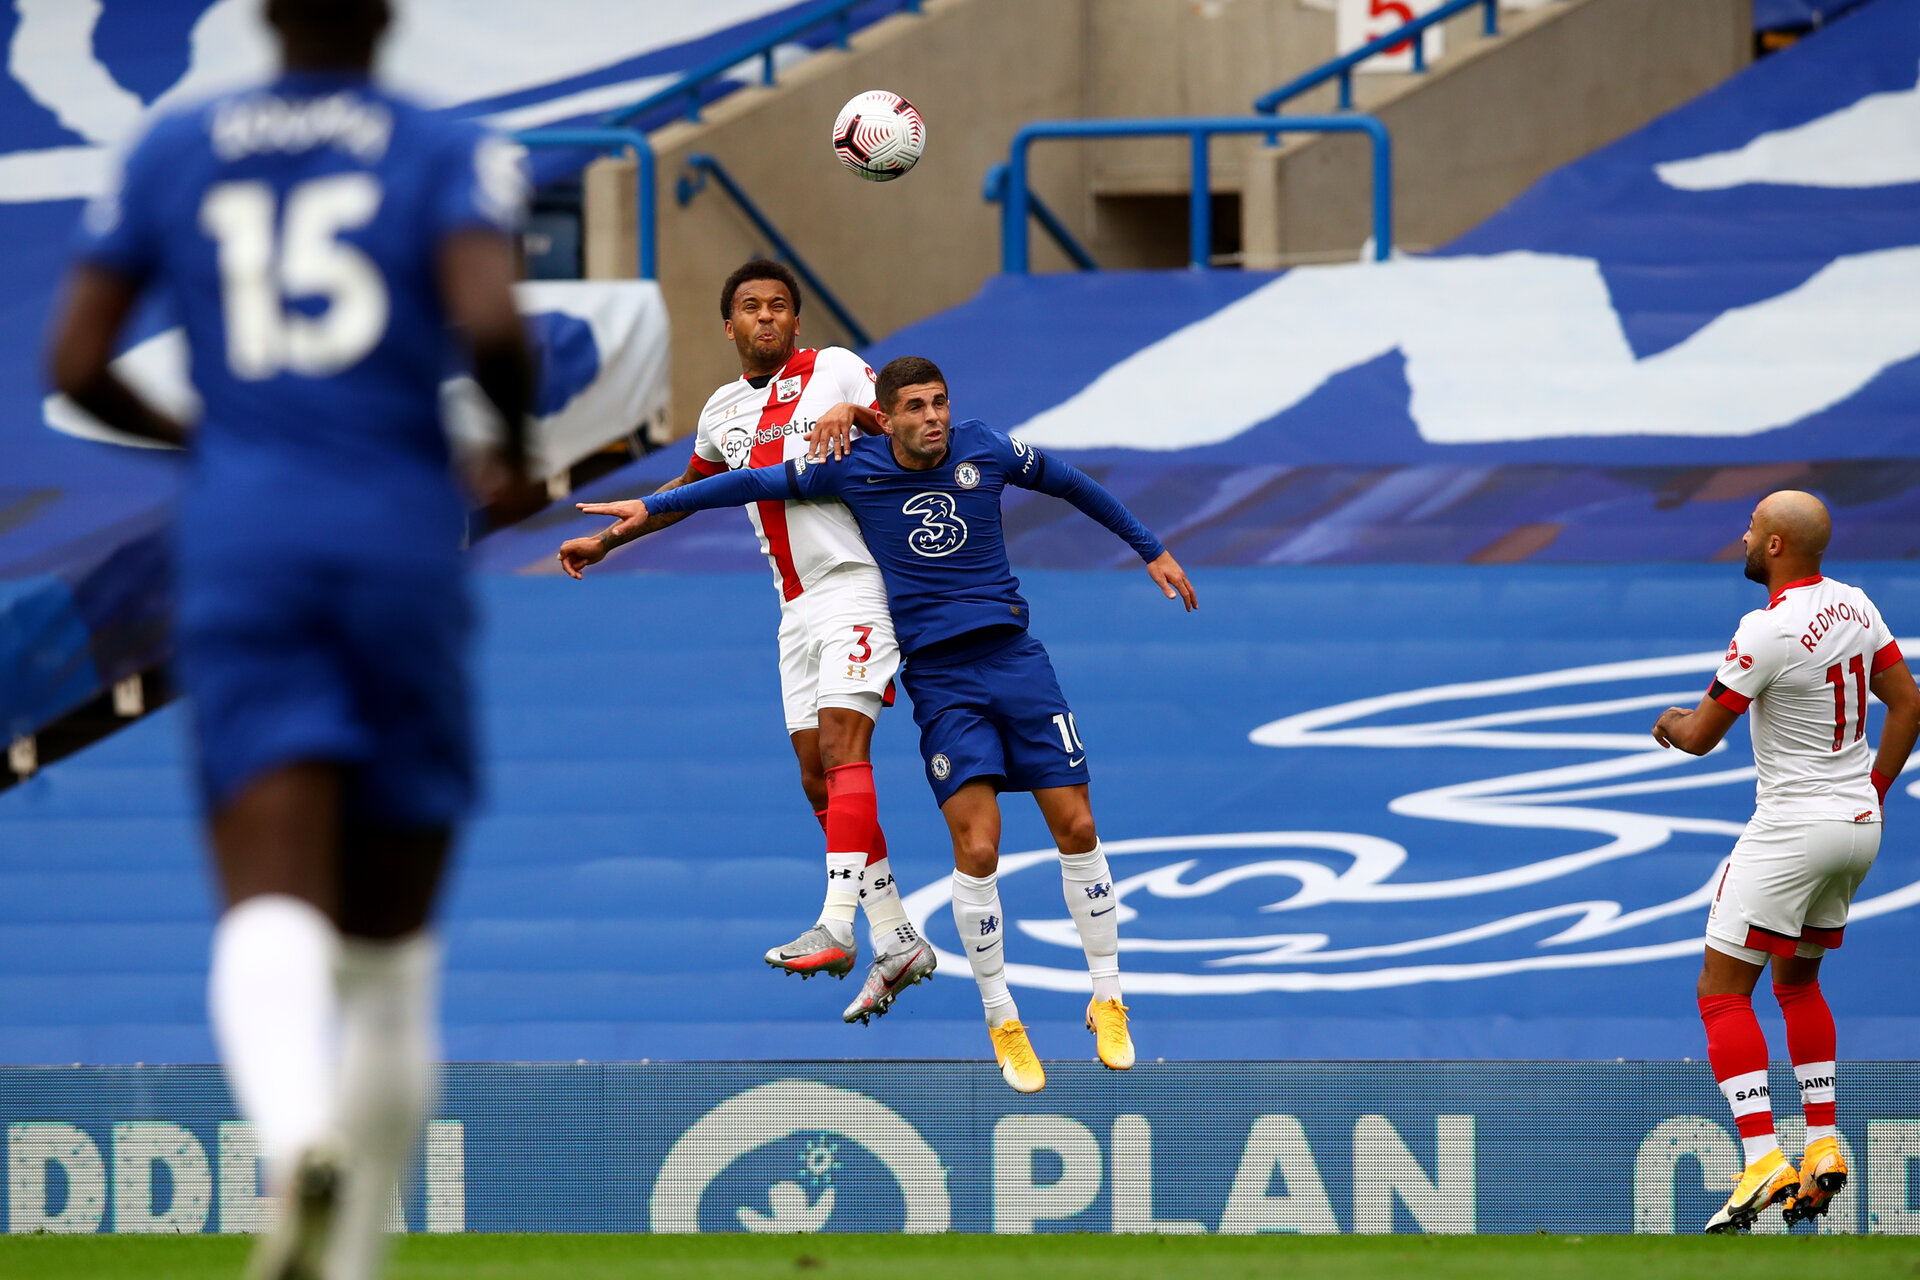 LONDON, ENGLAND - OCTOBER 17:  Ryan Bertrand (L) of Southampton and Christian Pulisic (R) of Chelsea during the Premier League match between Chelsea and Southampton at Stamford Bridge on October 17, 2020 in London, United Kingdom. Sporting stadiums around the UK remain under strict restrictions due to the Coronavirus Pandemic as Government social distancing laws prohibit fans inside venues resulting in games being played behind closed doors. (Photo by Matt Watson/Southampton FC via Getty Images)